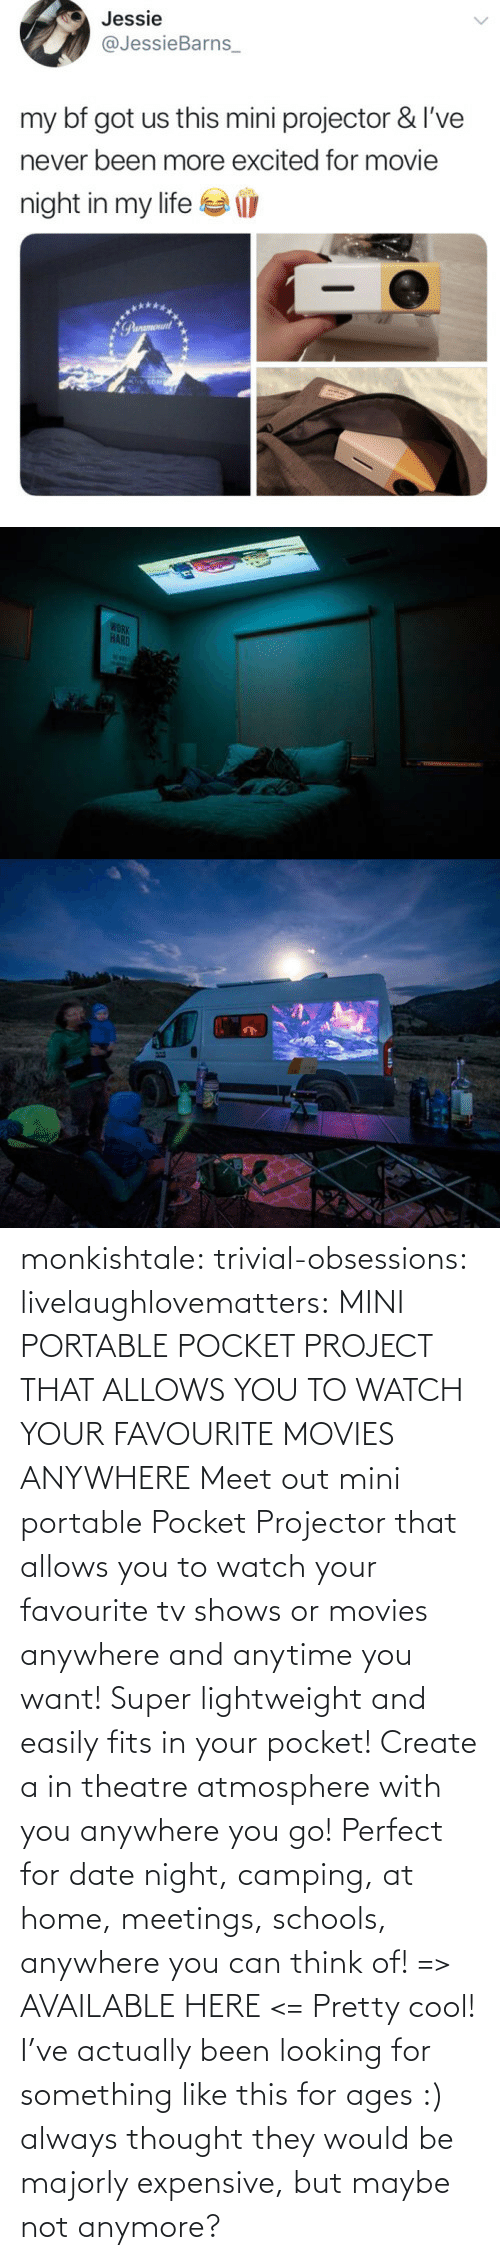 Home: monkishtale: trivial-obsessions:   livelaughlovematters:   MINI PORTABLE POCKET PROJECT THAT ALLOWS YOU TO WATCH YOUR FAVOURITE MOVIES ANYWHERE Meet out mini portable Pocket Projector that allows you to watch your favourite tv shows or movies anywhere and anytime you want! Super lightweight and easily fits in your pocket! Create a in theatre atmosphere with you anywhere you go! Perfect for date night, camping, at home, meetings, schools, anywhere you can think of! => AVAILABLE HERE <=    Pretty cool!    I've actually been looking for something like this for ages :) always thought they would be majorly expensive, but maybe not anymore?